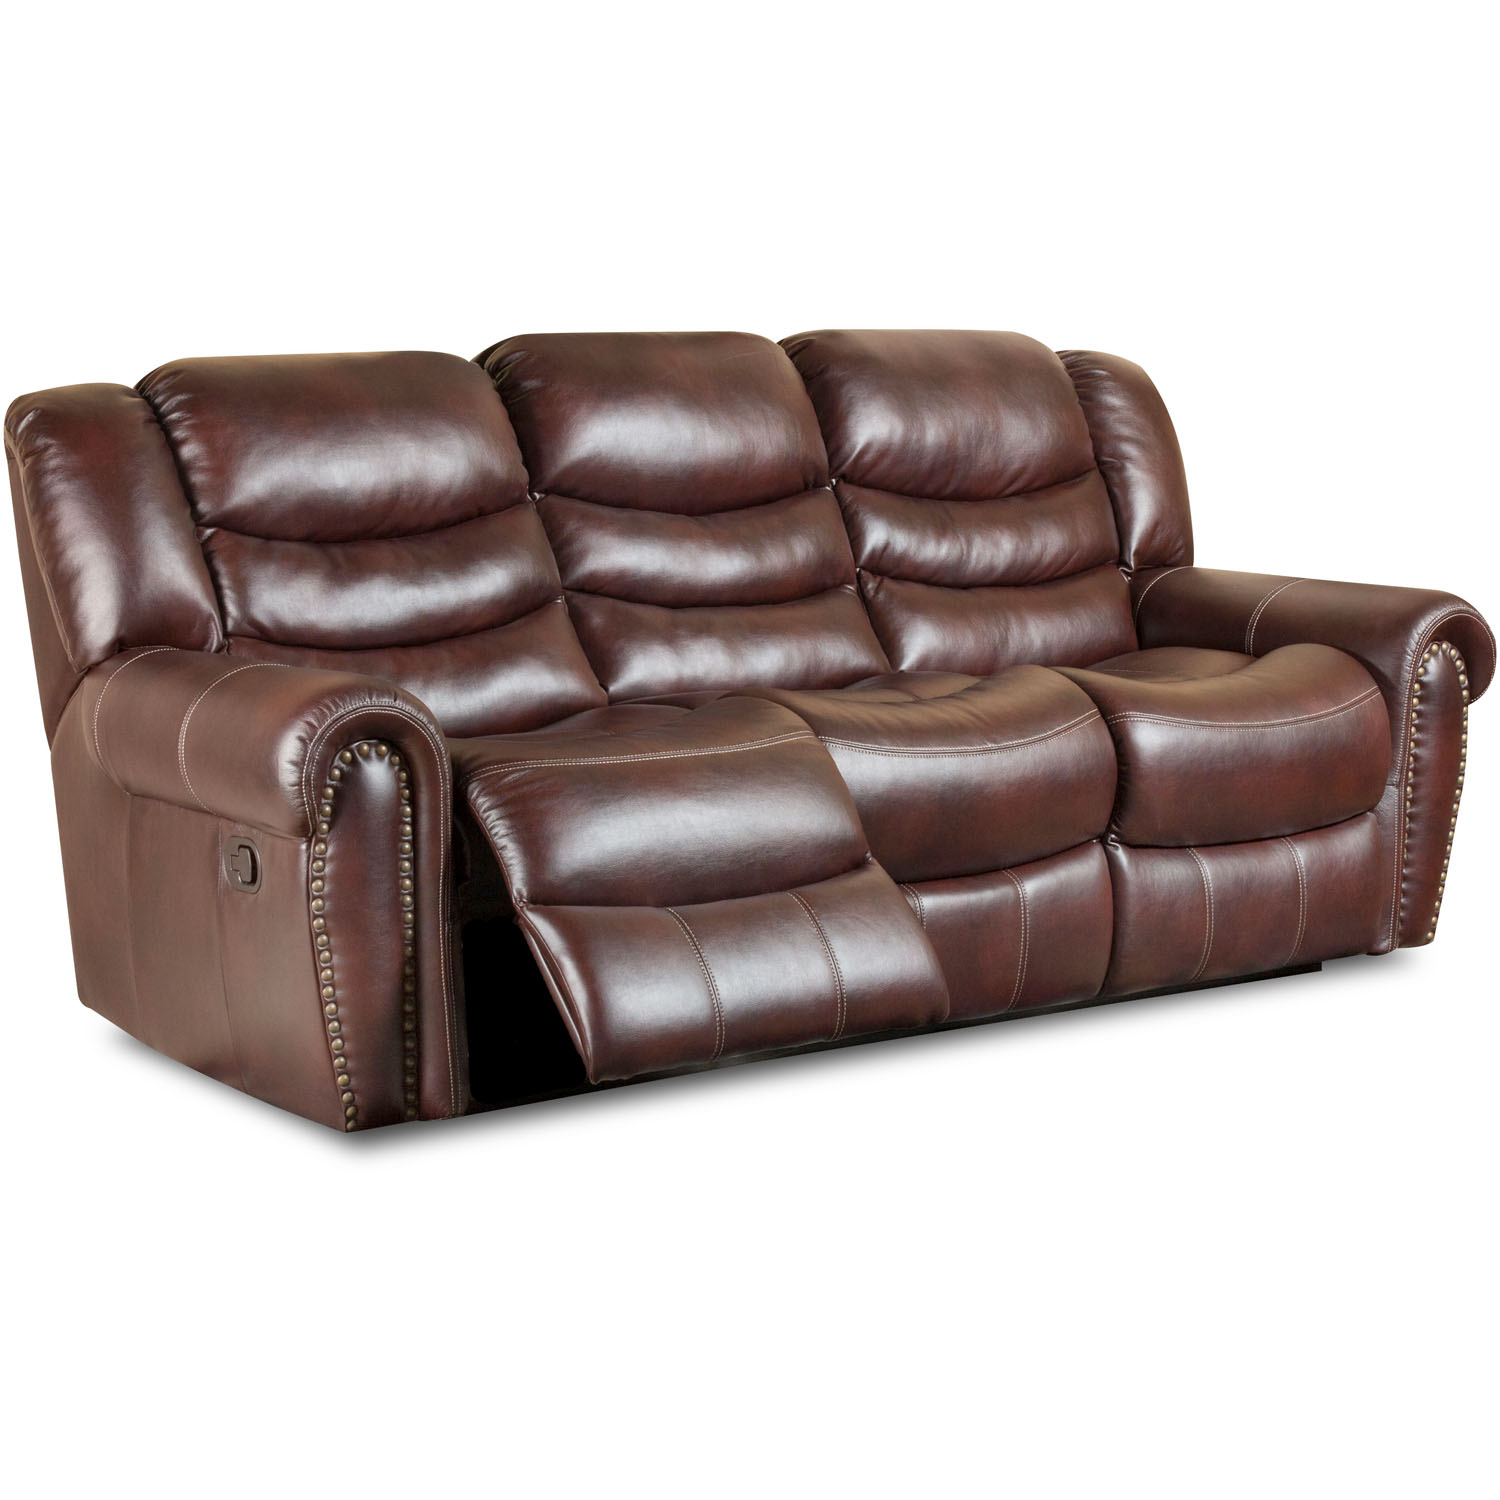 Cambridge Lancaster Double Reclining Sofa